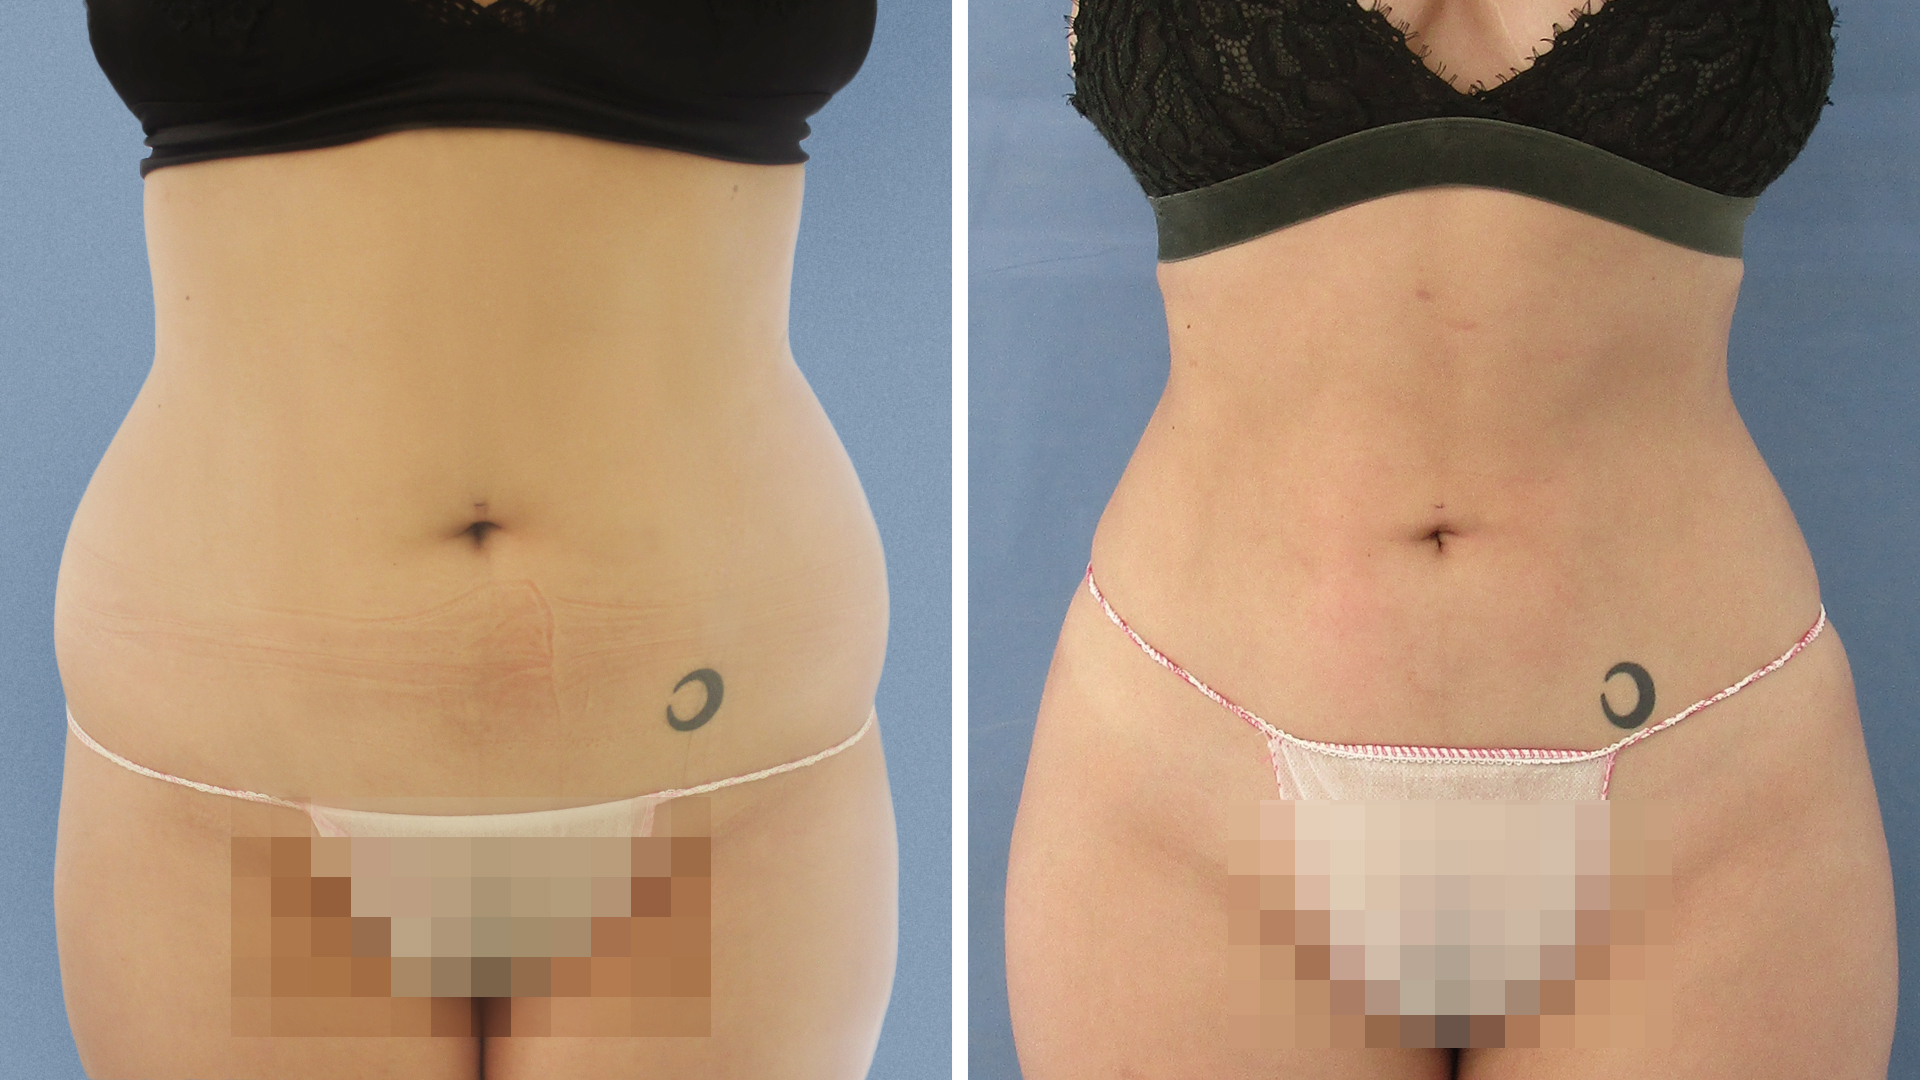 Liposuction de caderas antes y despues de adelgazar